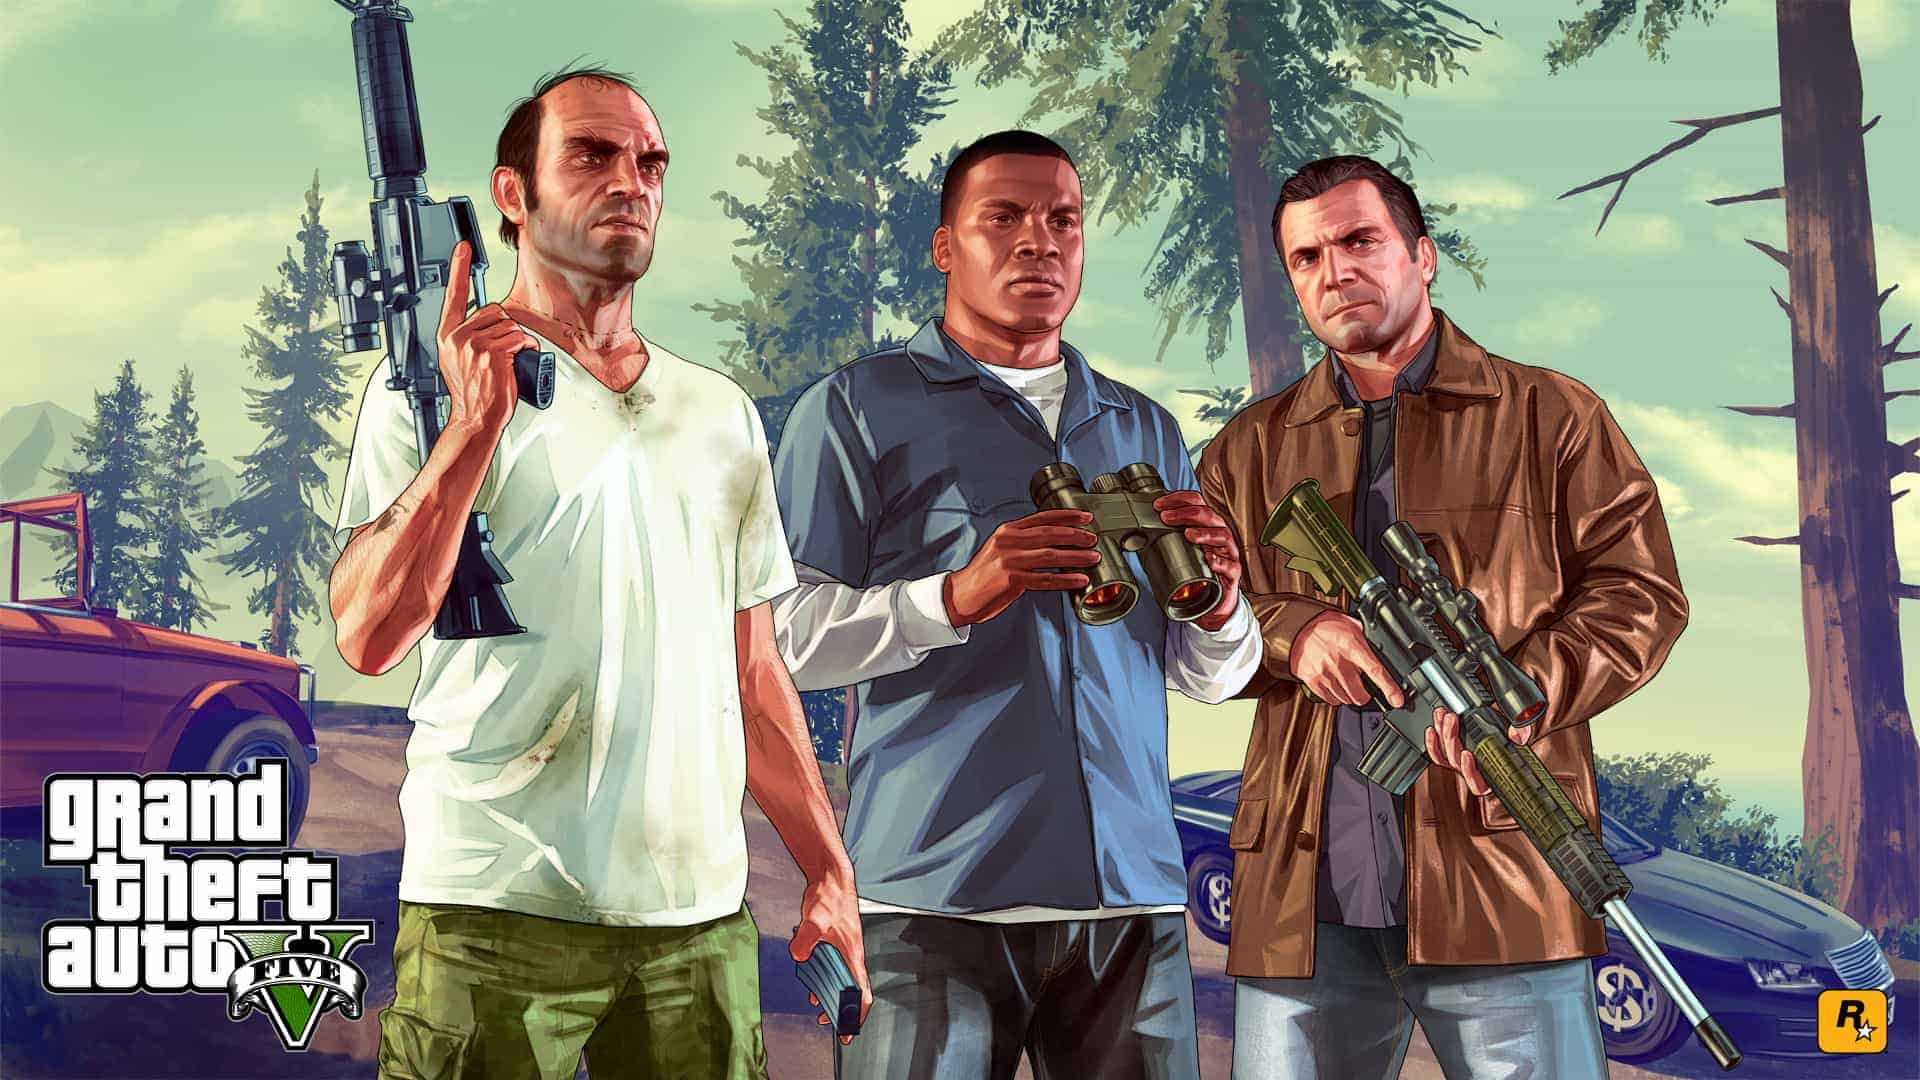 voice-actor-claims-involvement-in-foreseeable-future-gta-content